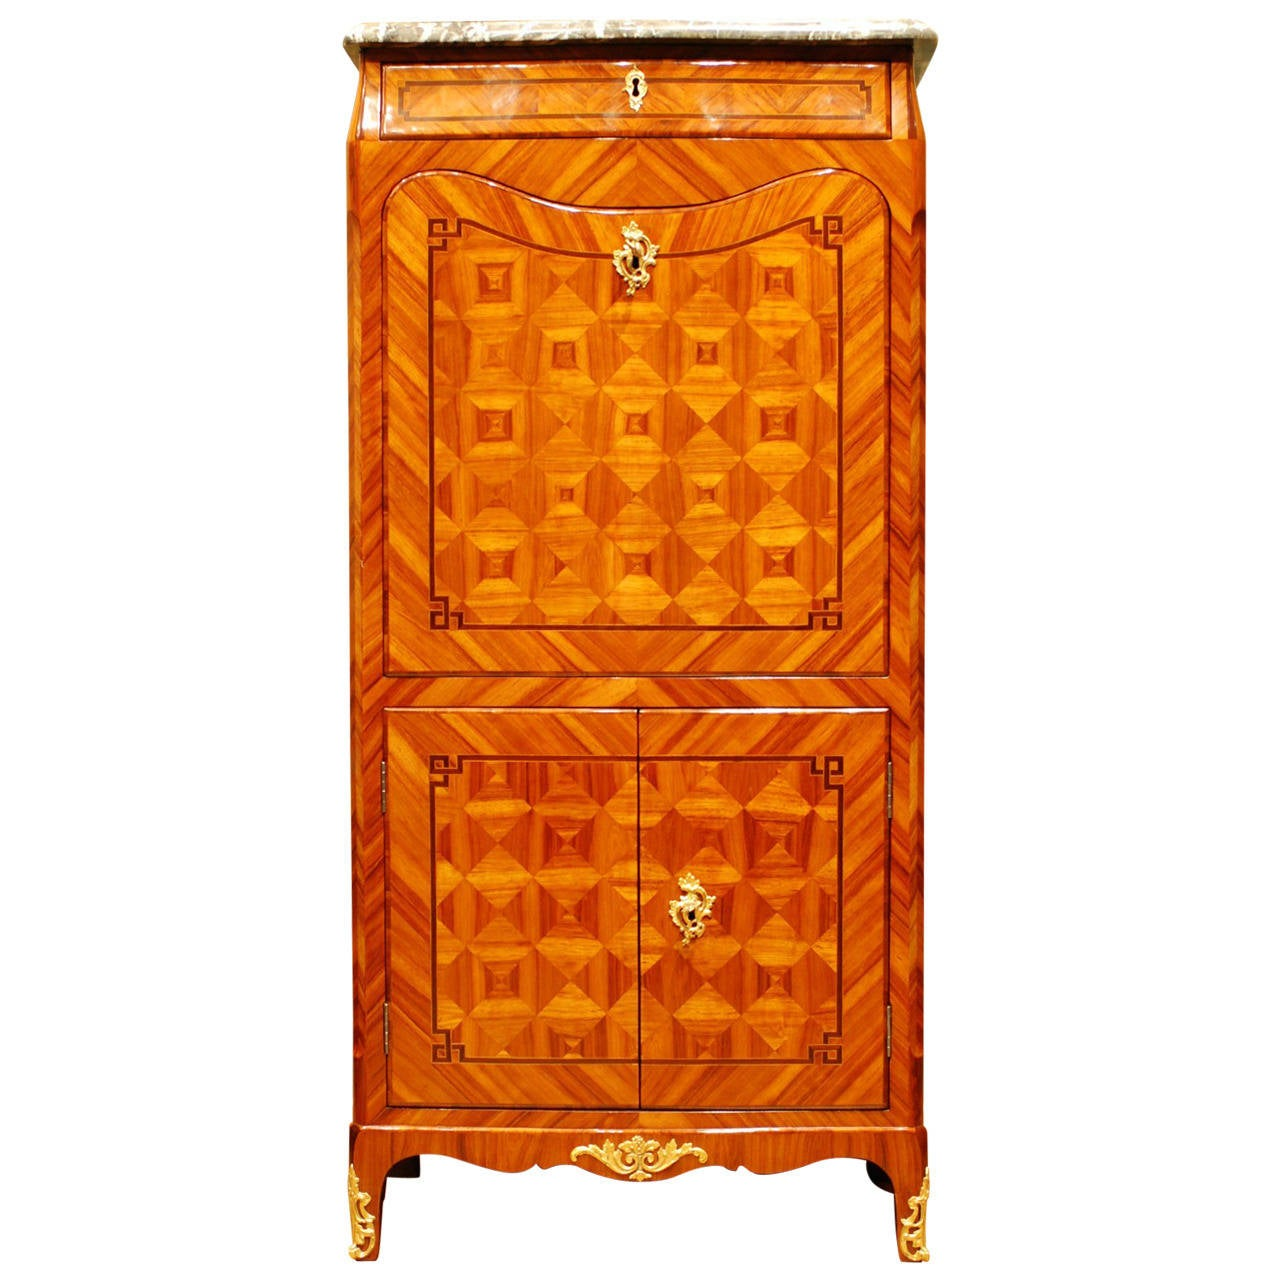 Transition louis xv to louis xvi bois de rose sec taire abattant at 1stdibs for Chambre bois de rose